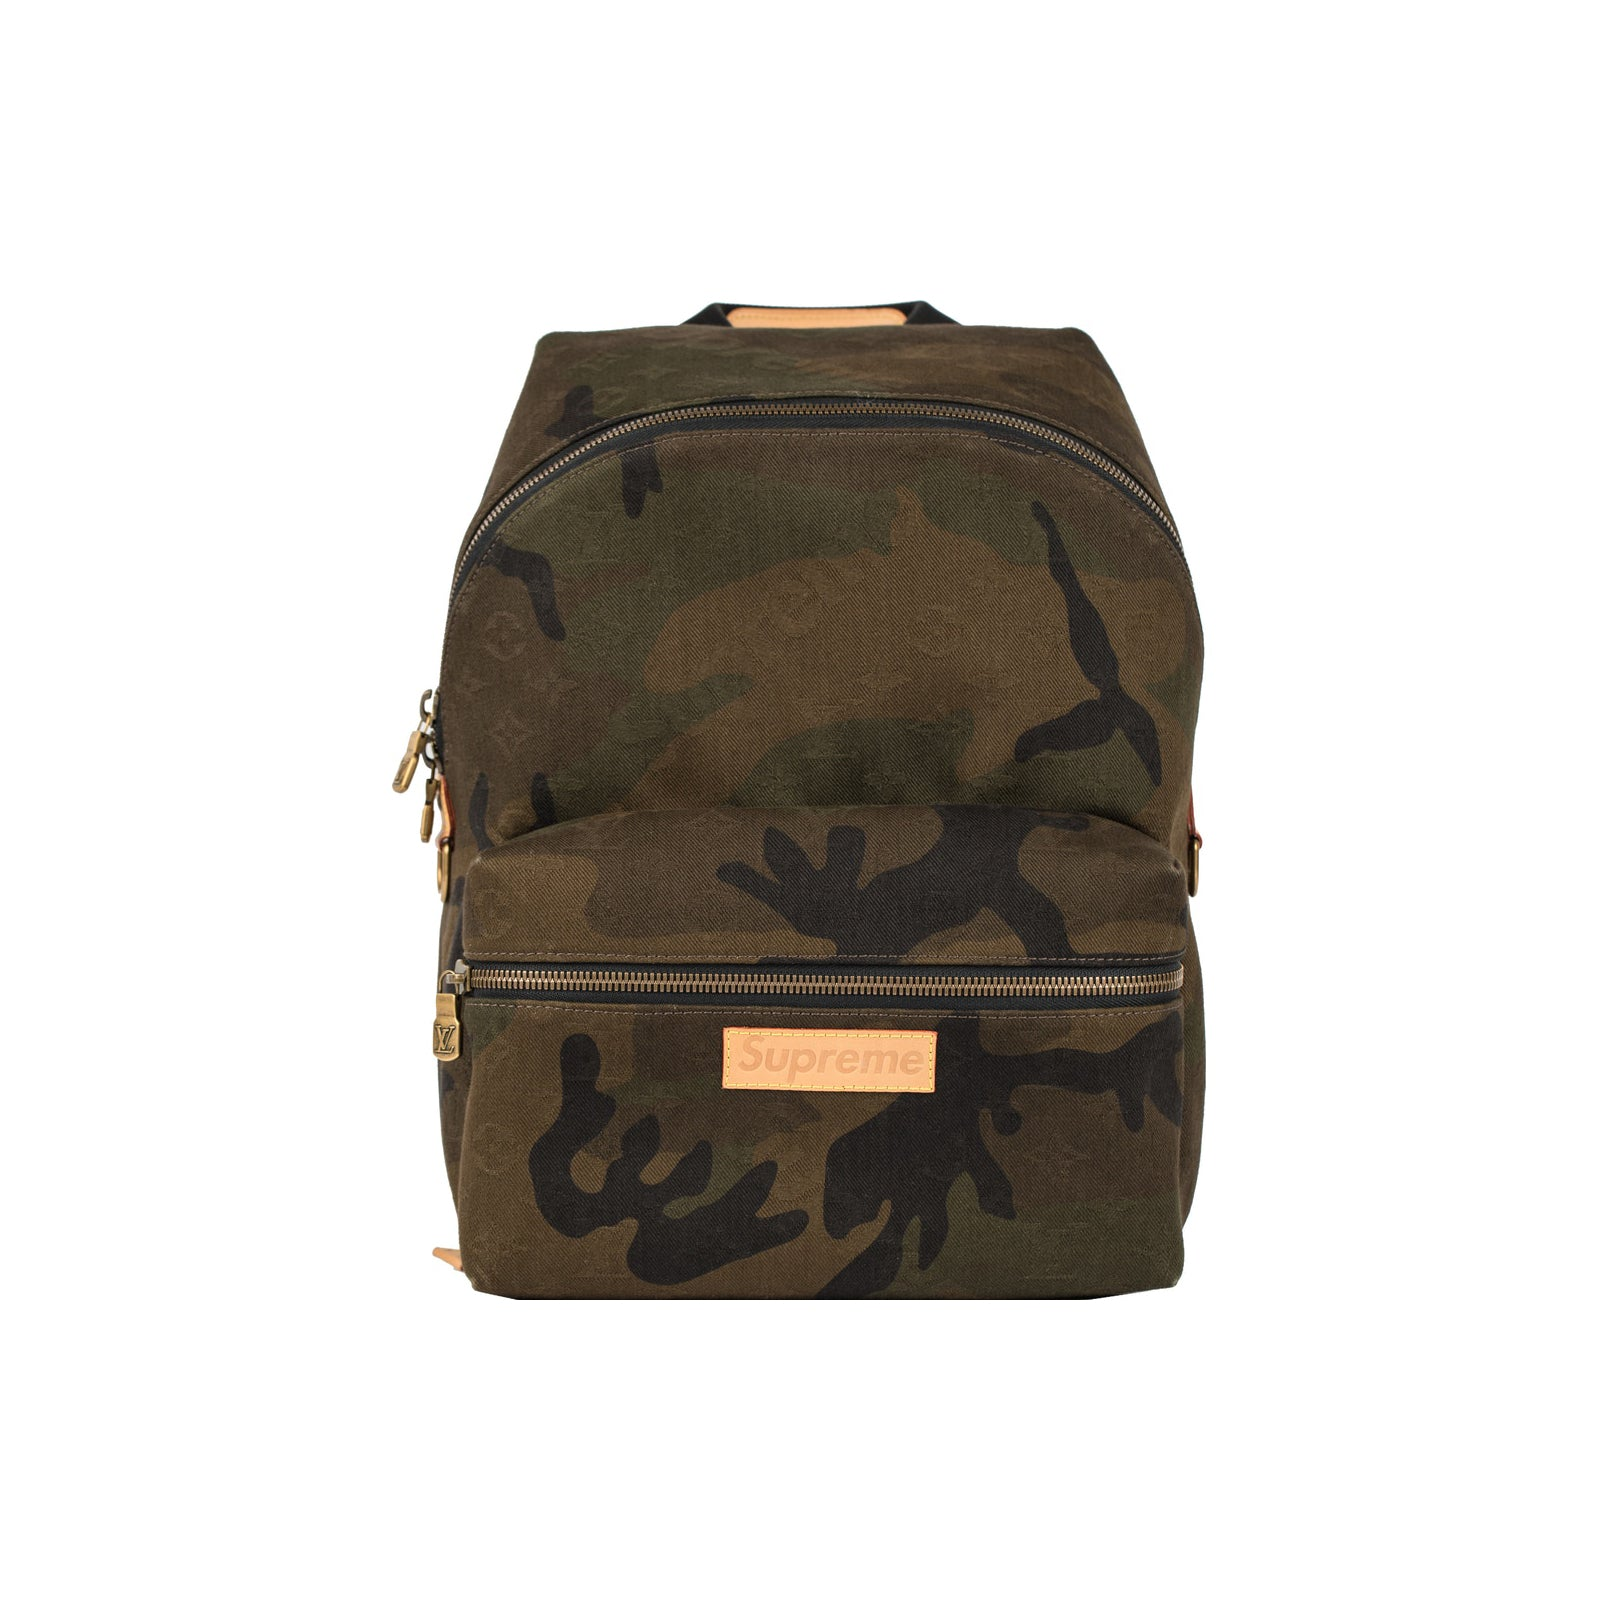 92126d9ec63b Louis Vuitton x Supreme Apollo Backpack Monogram Camo – Margaux ...